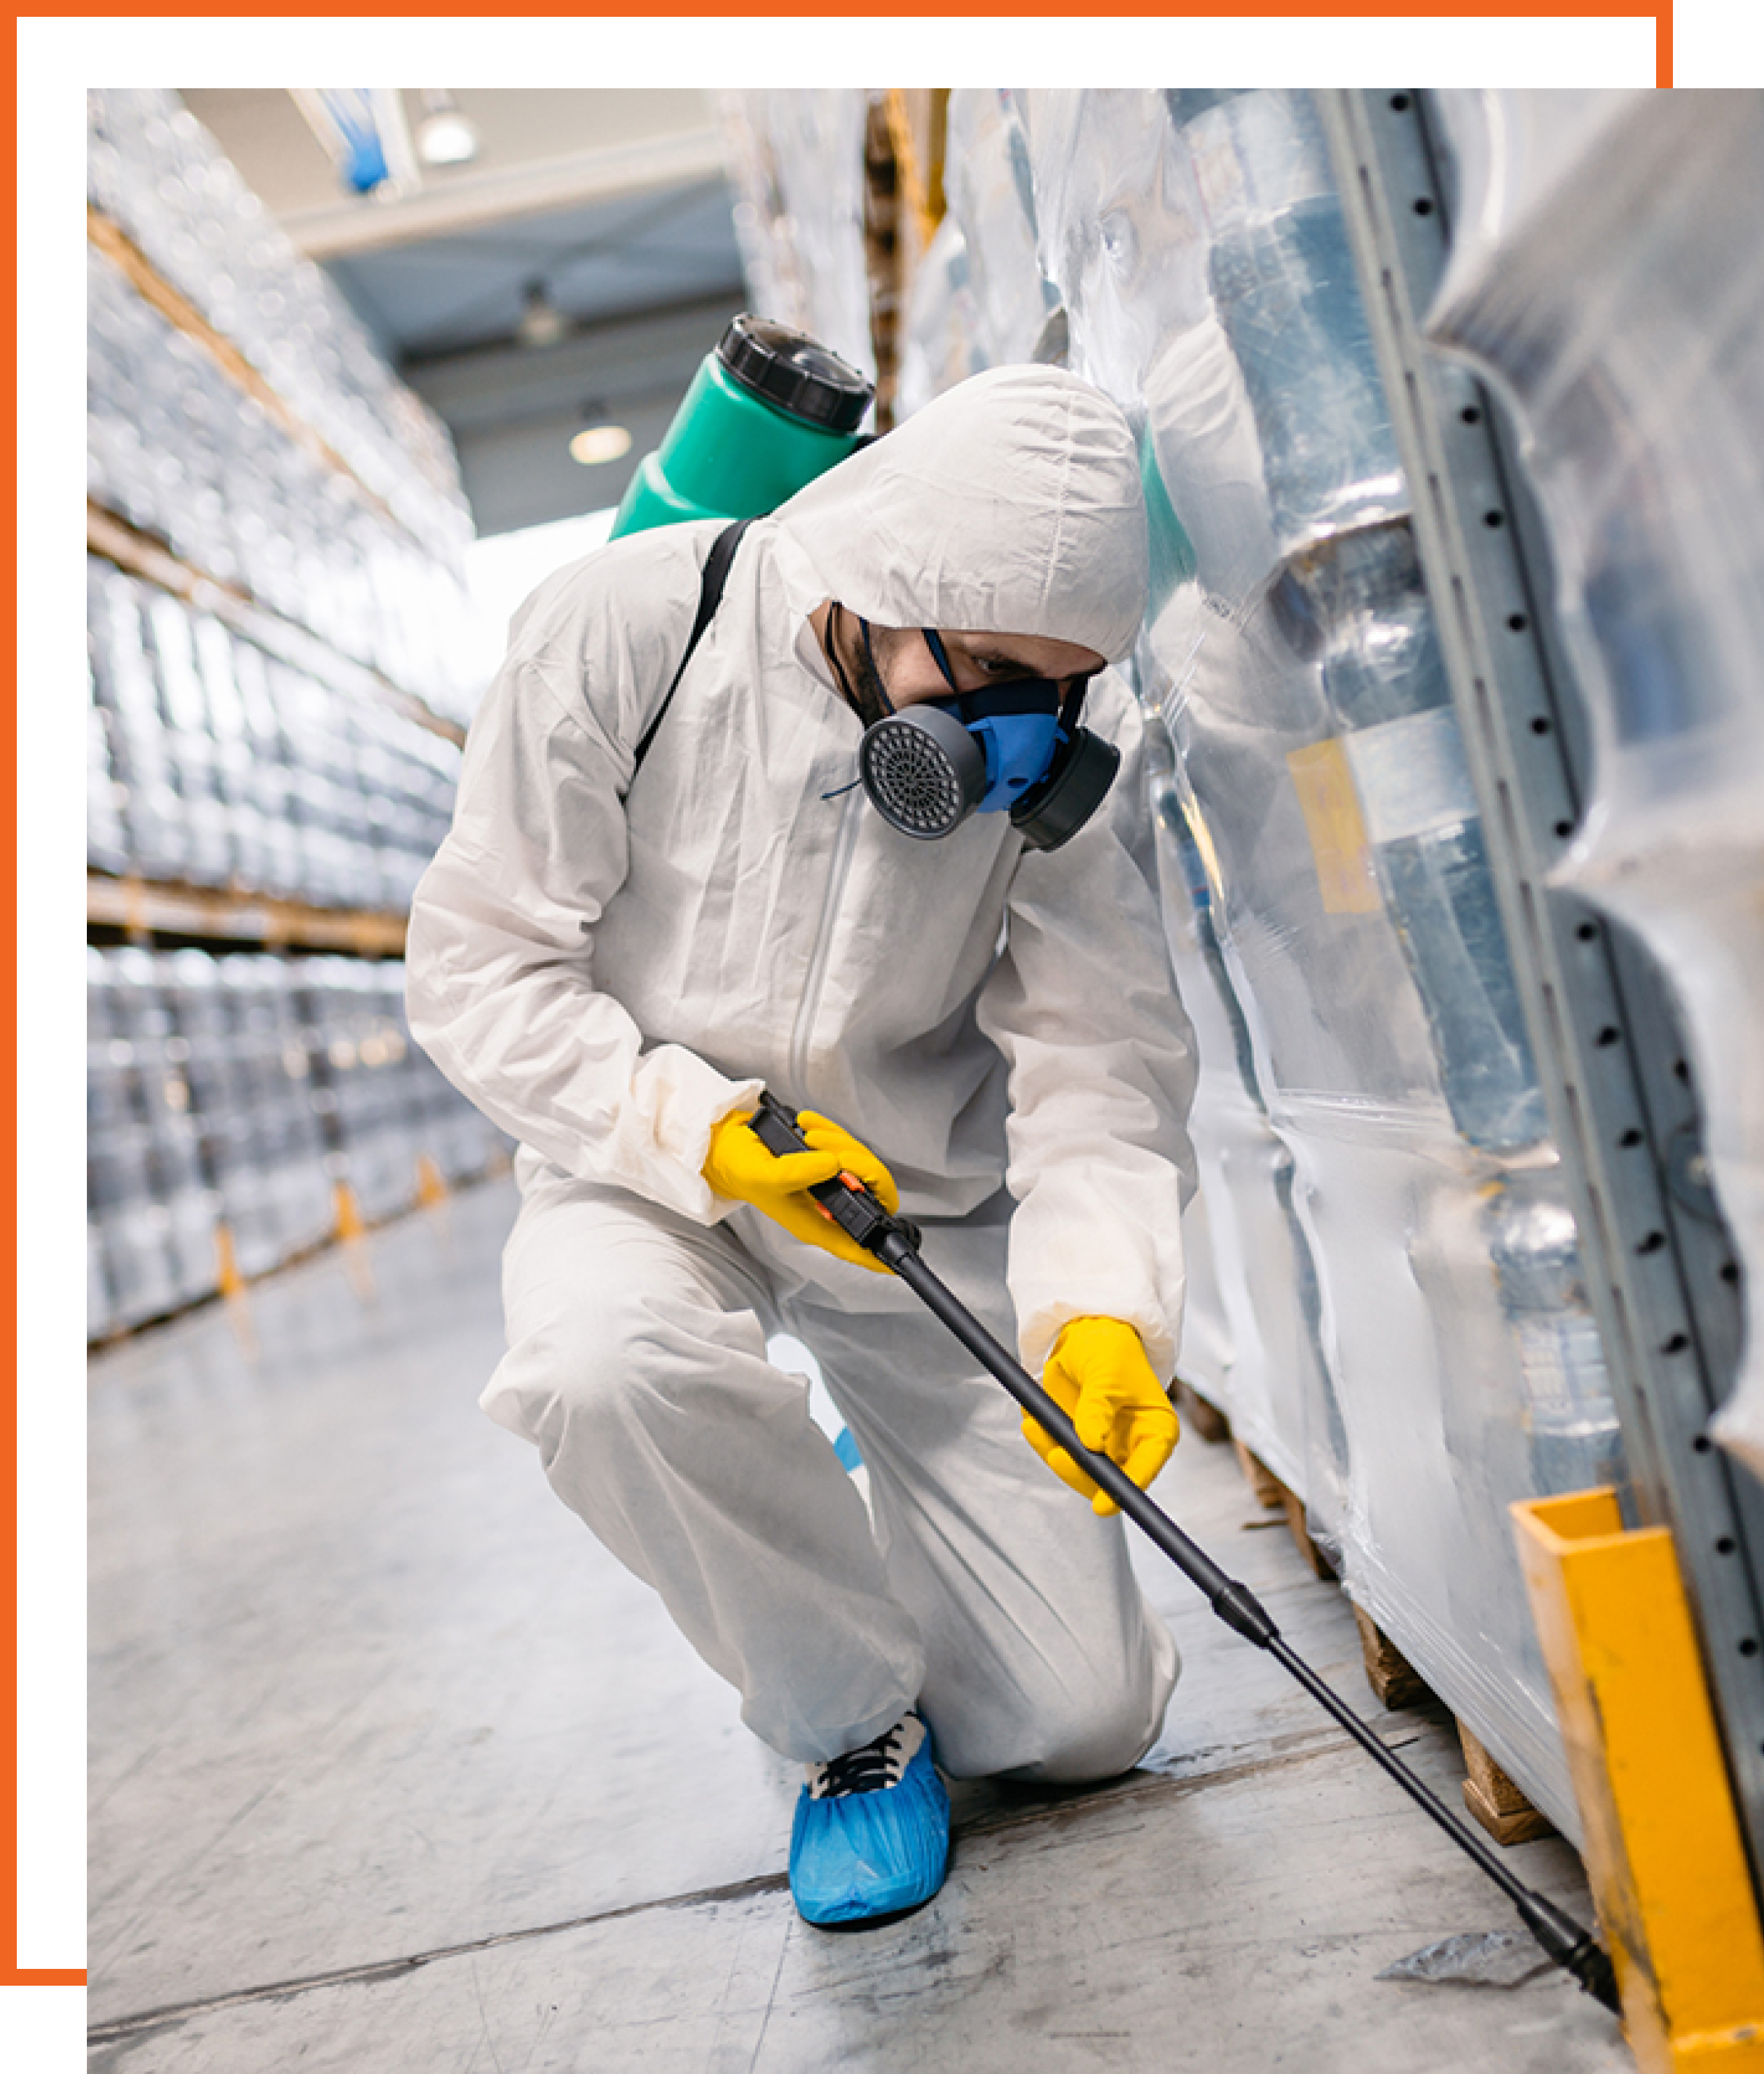 A Pest Control Field Service Engineer working on Site with an orange background